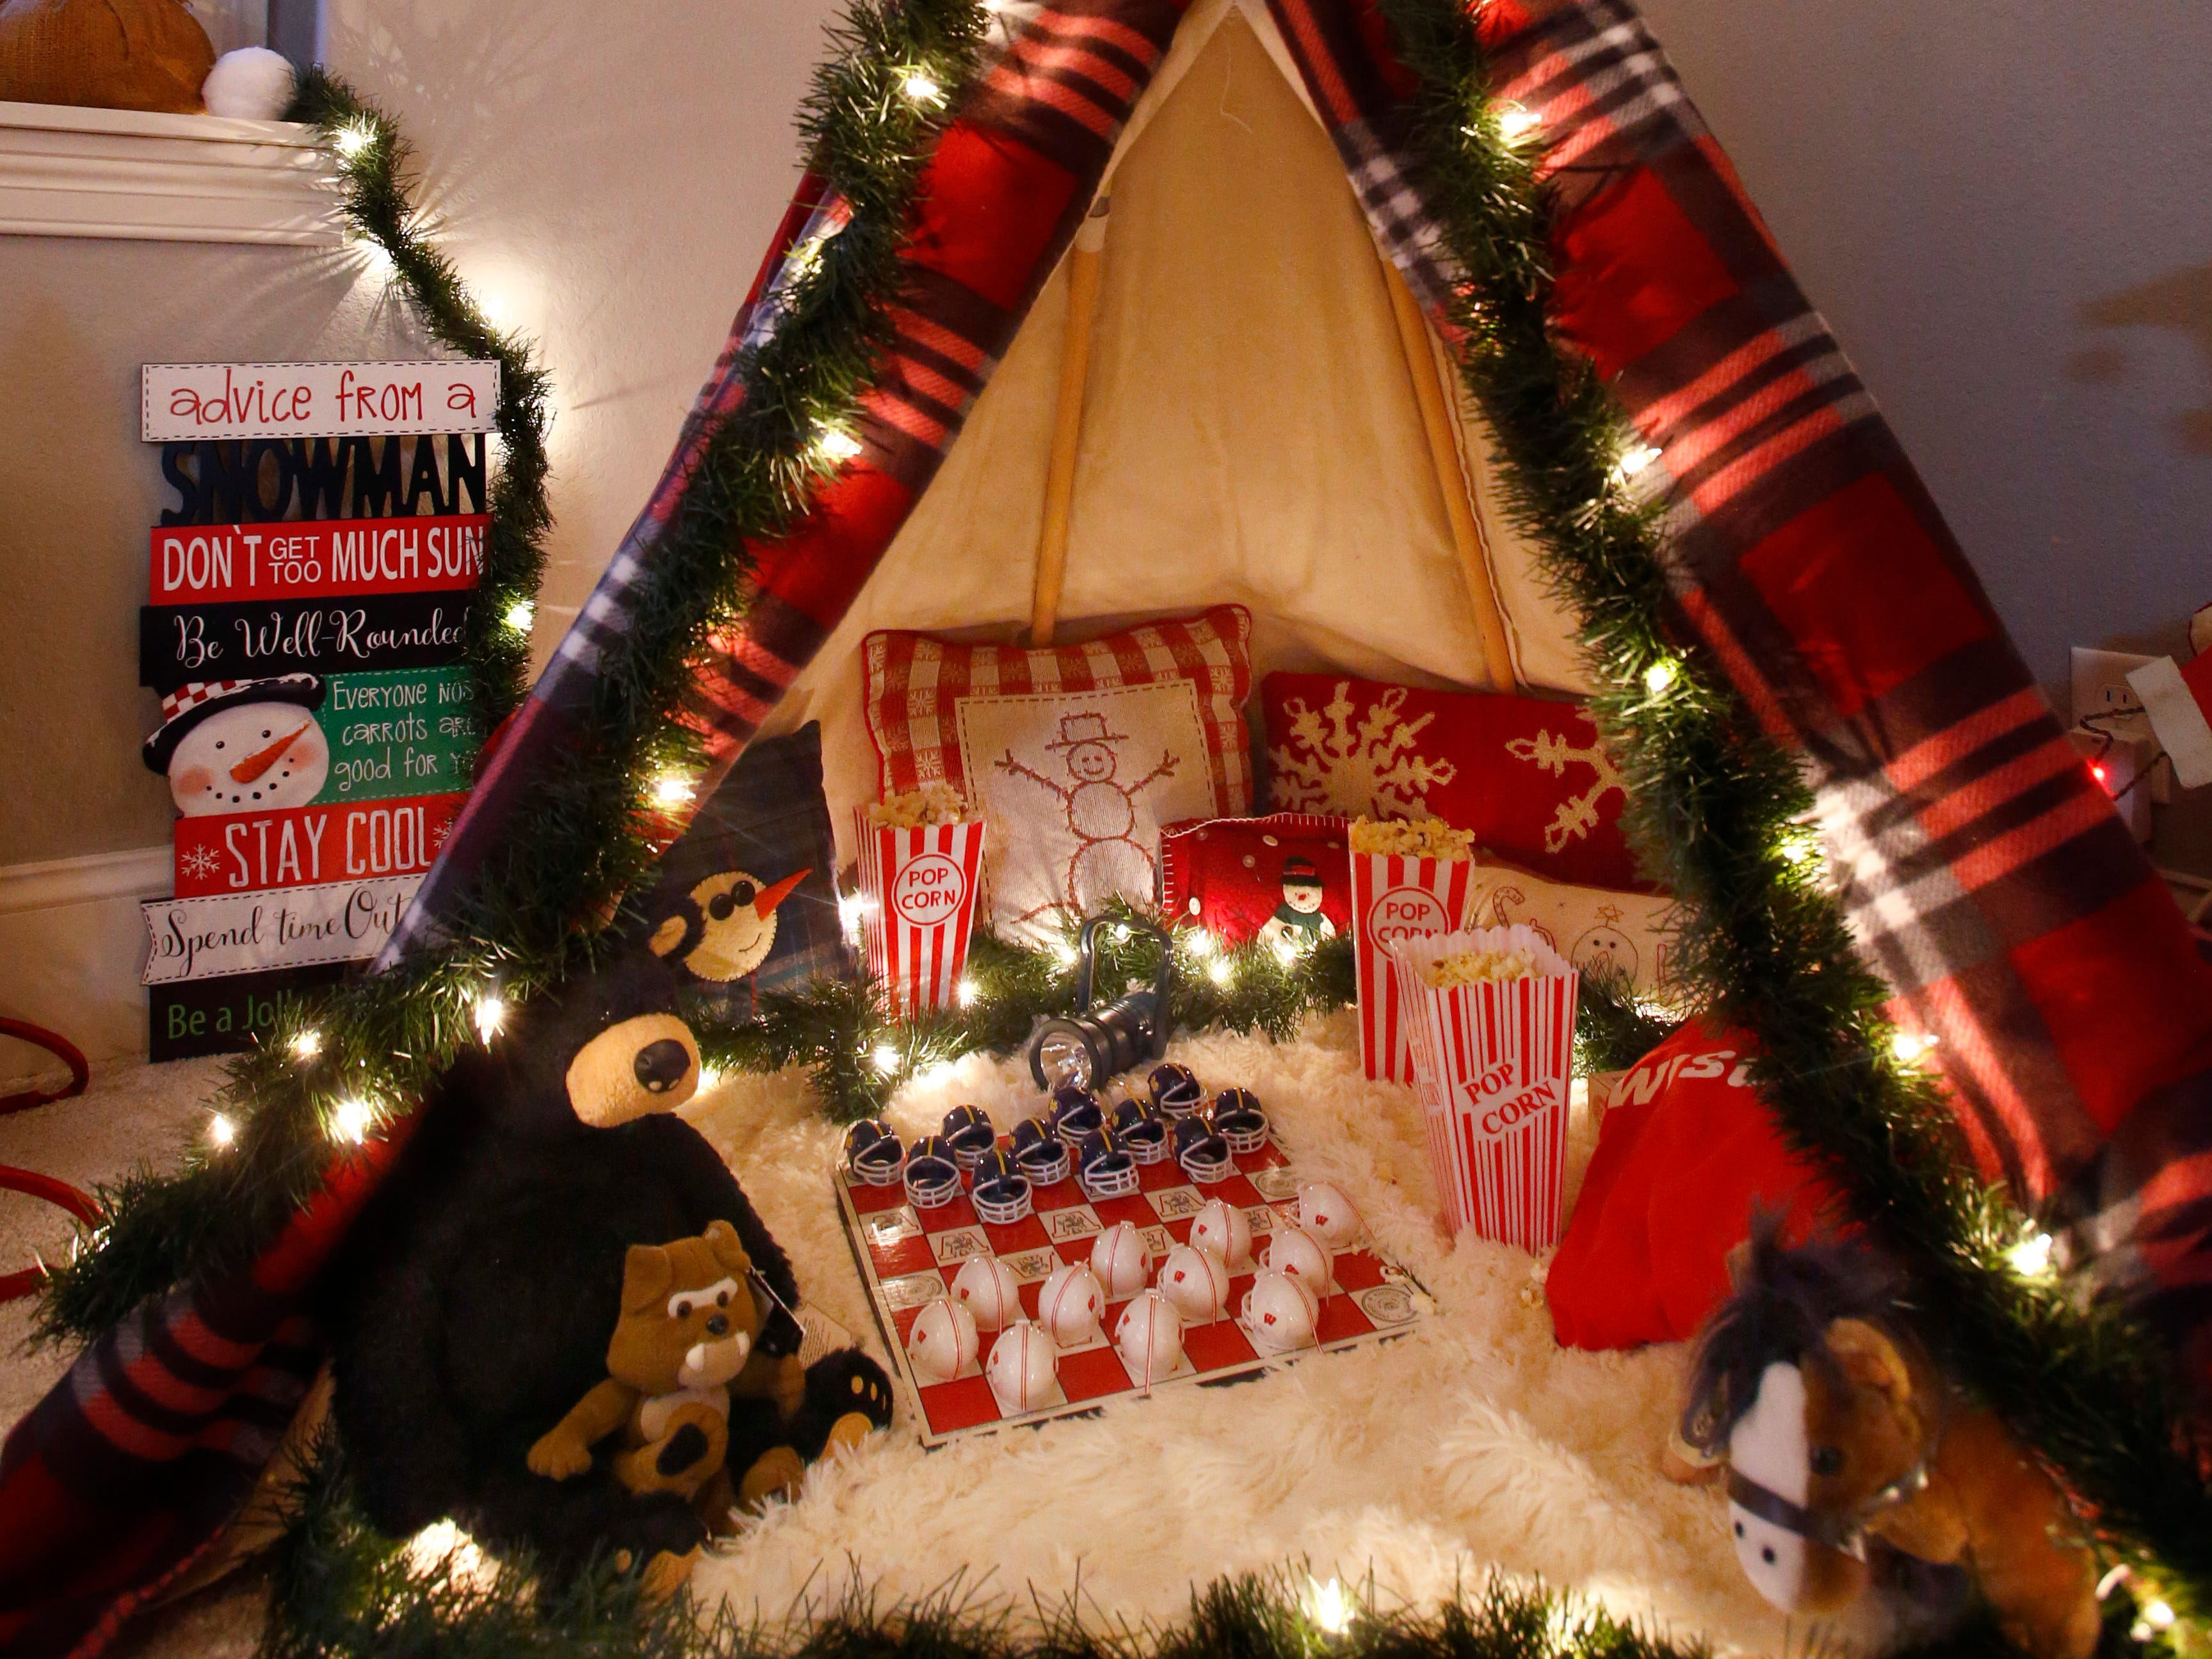 A child's teepee in a second floor bedroom at the 26th annual Christmas Fantasy House with 18 rooms decorated by more than 16 area decorators for benefit Ronald McDonald House Charities Eastern Wisconsin. The Fantasy house will be open 10 a.m. to 8 p.m. on Nov. 9, and 10 a.m. to 6 p.m. on Nov. 10 and 11. Parking and shuttle to the House is at Ridgewood Baptist Church, 2720 Lilly Road, Brookfield. Tickets are $20 at the door.